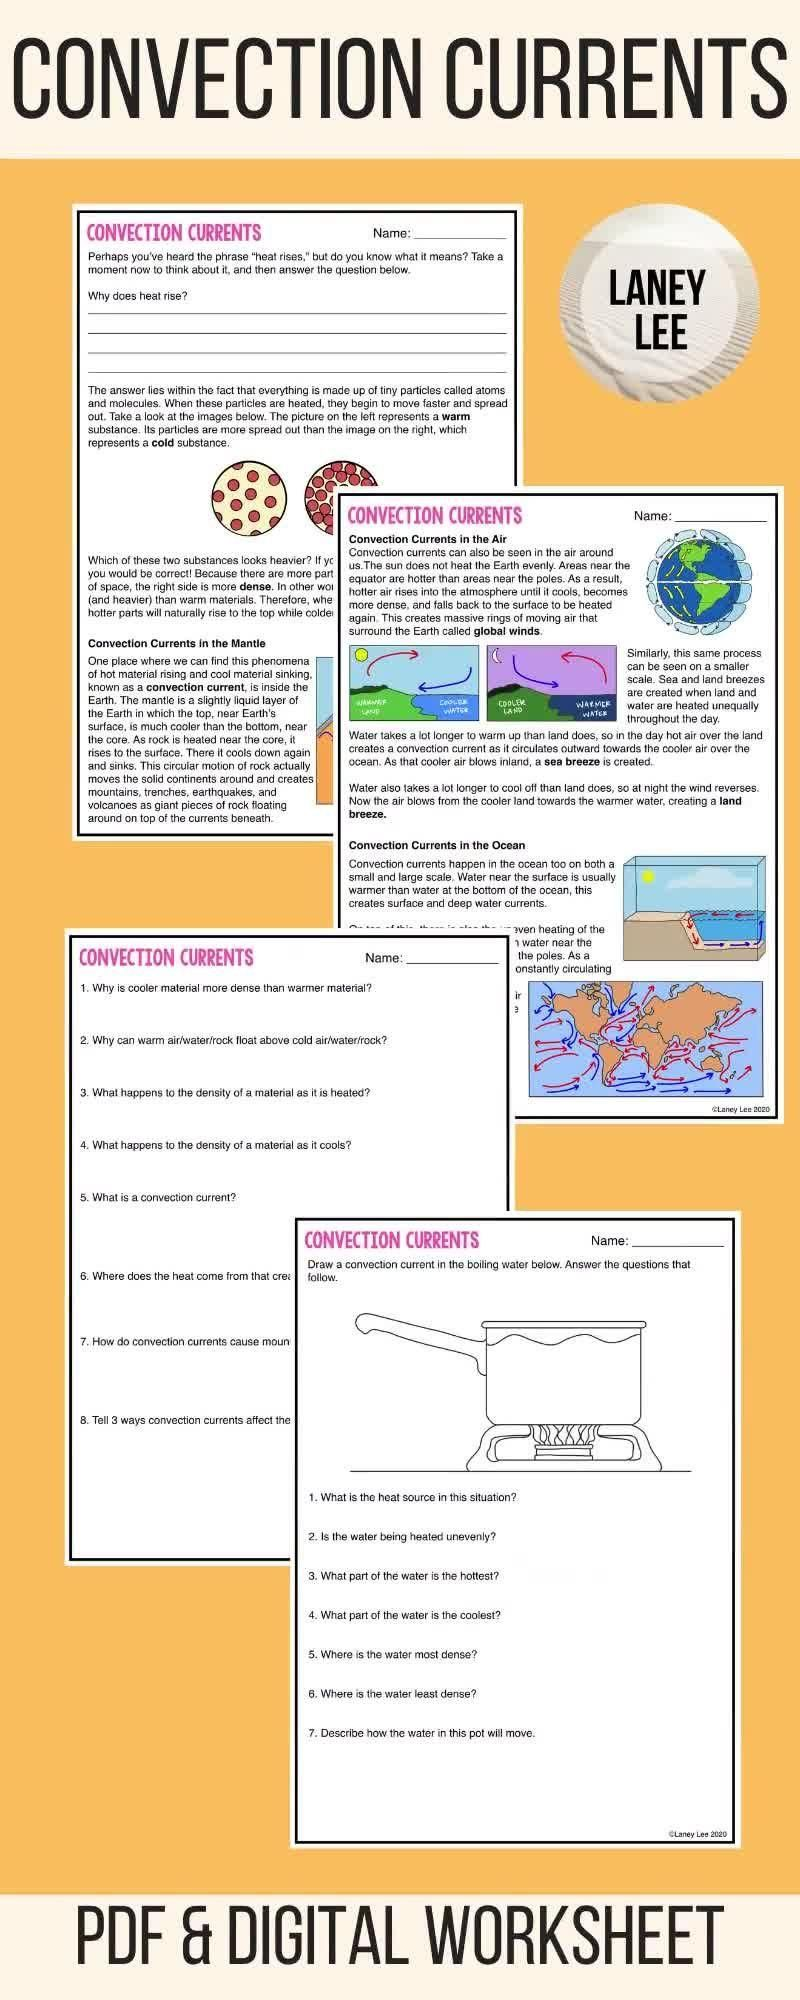 Convection Currents Guided Reading Worksheets Pdf Digital Versions Video Video In 2020 Guided Reading Worksheets Guided Reading Reading Worksheets